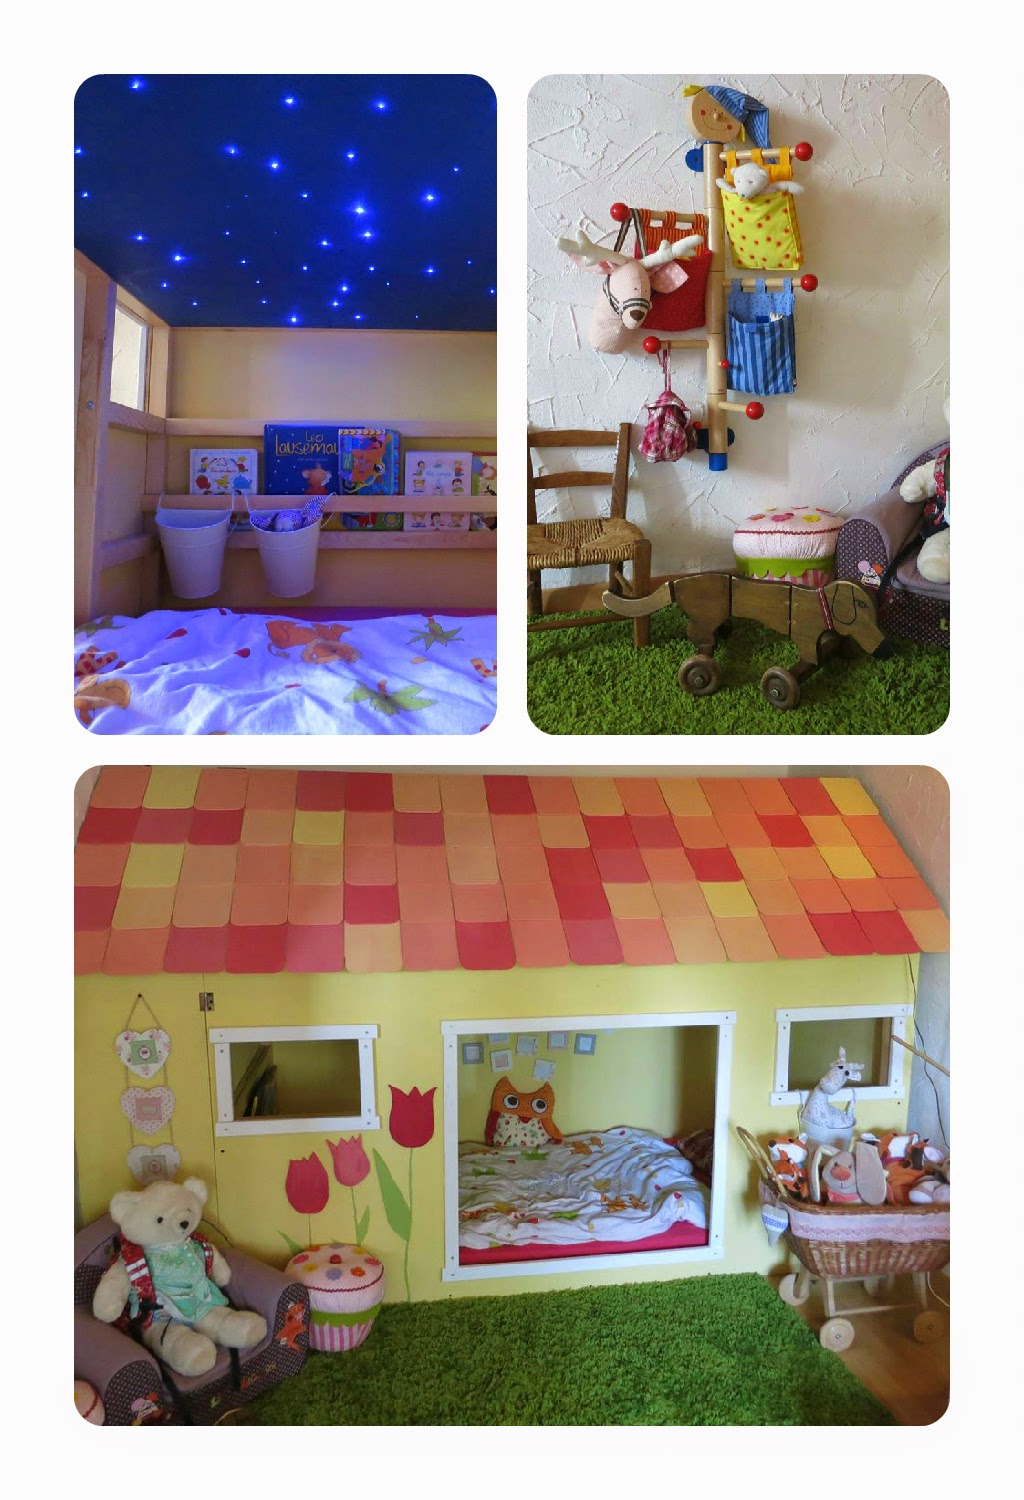 fanasaba kinderzimmer do it yourself. Black Bedroom Furniture Sets. Home Design Ideas